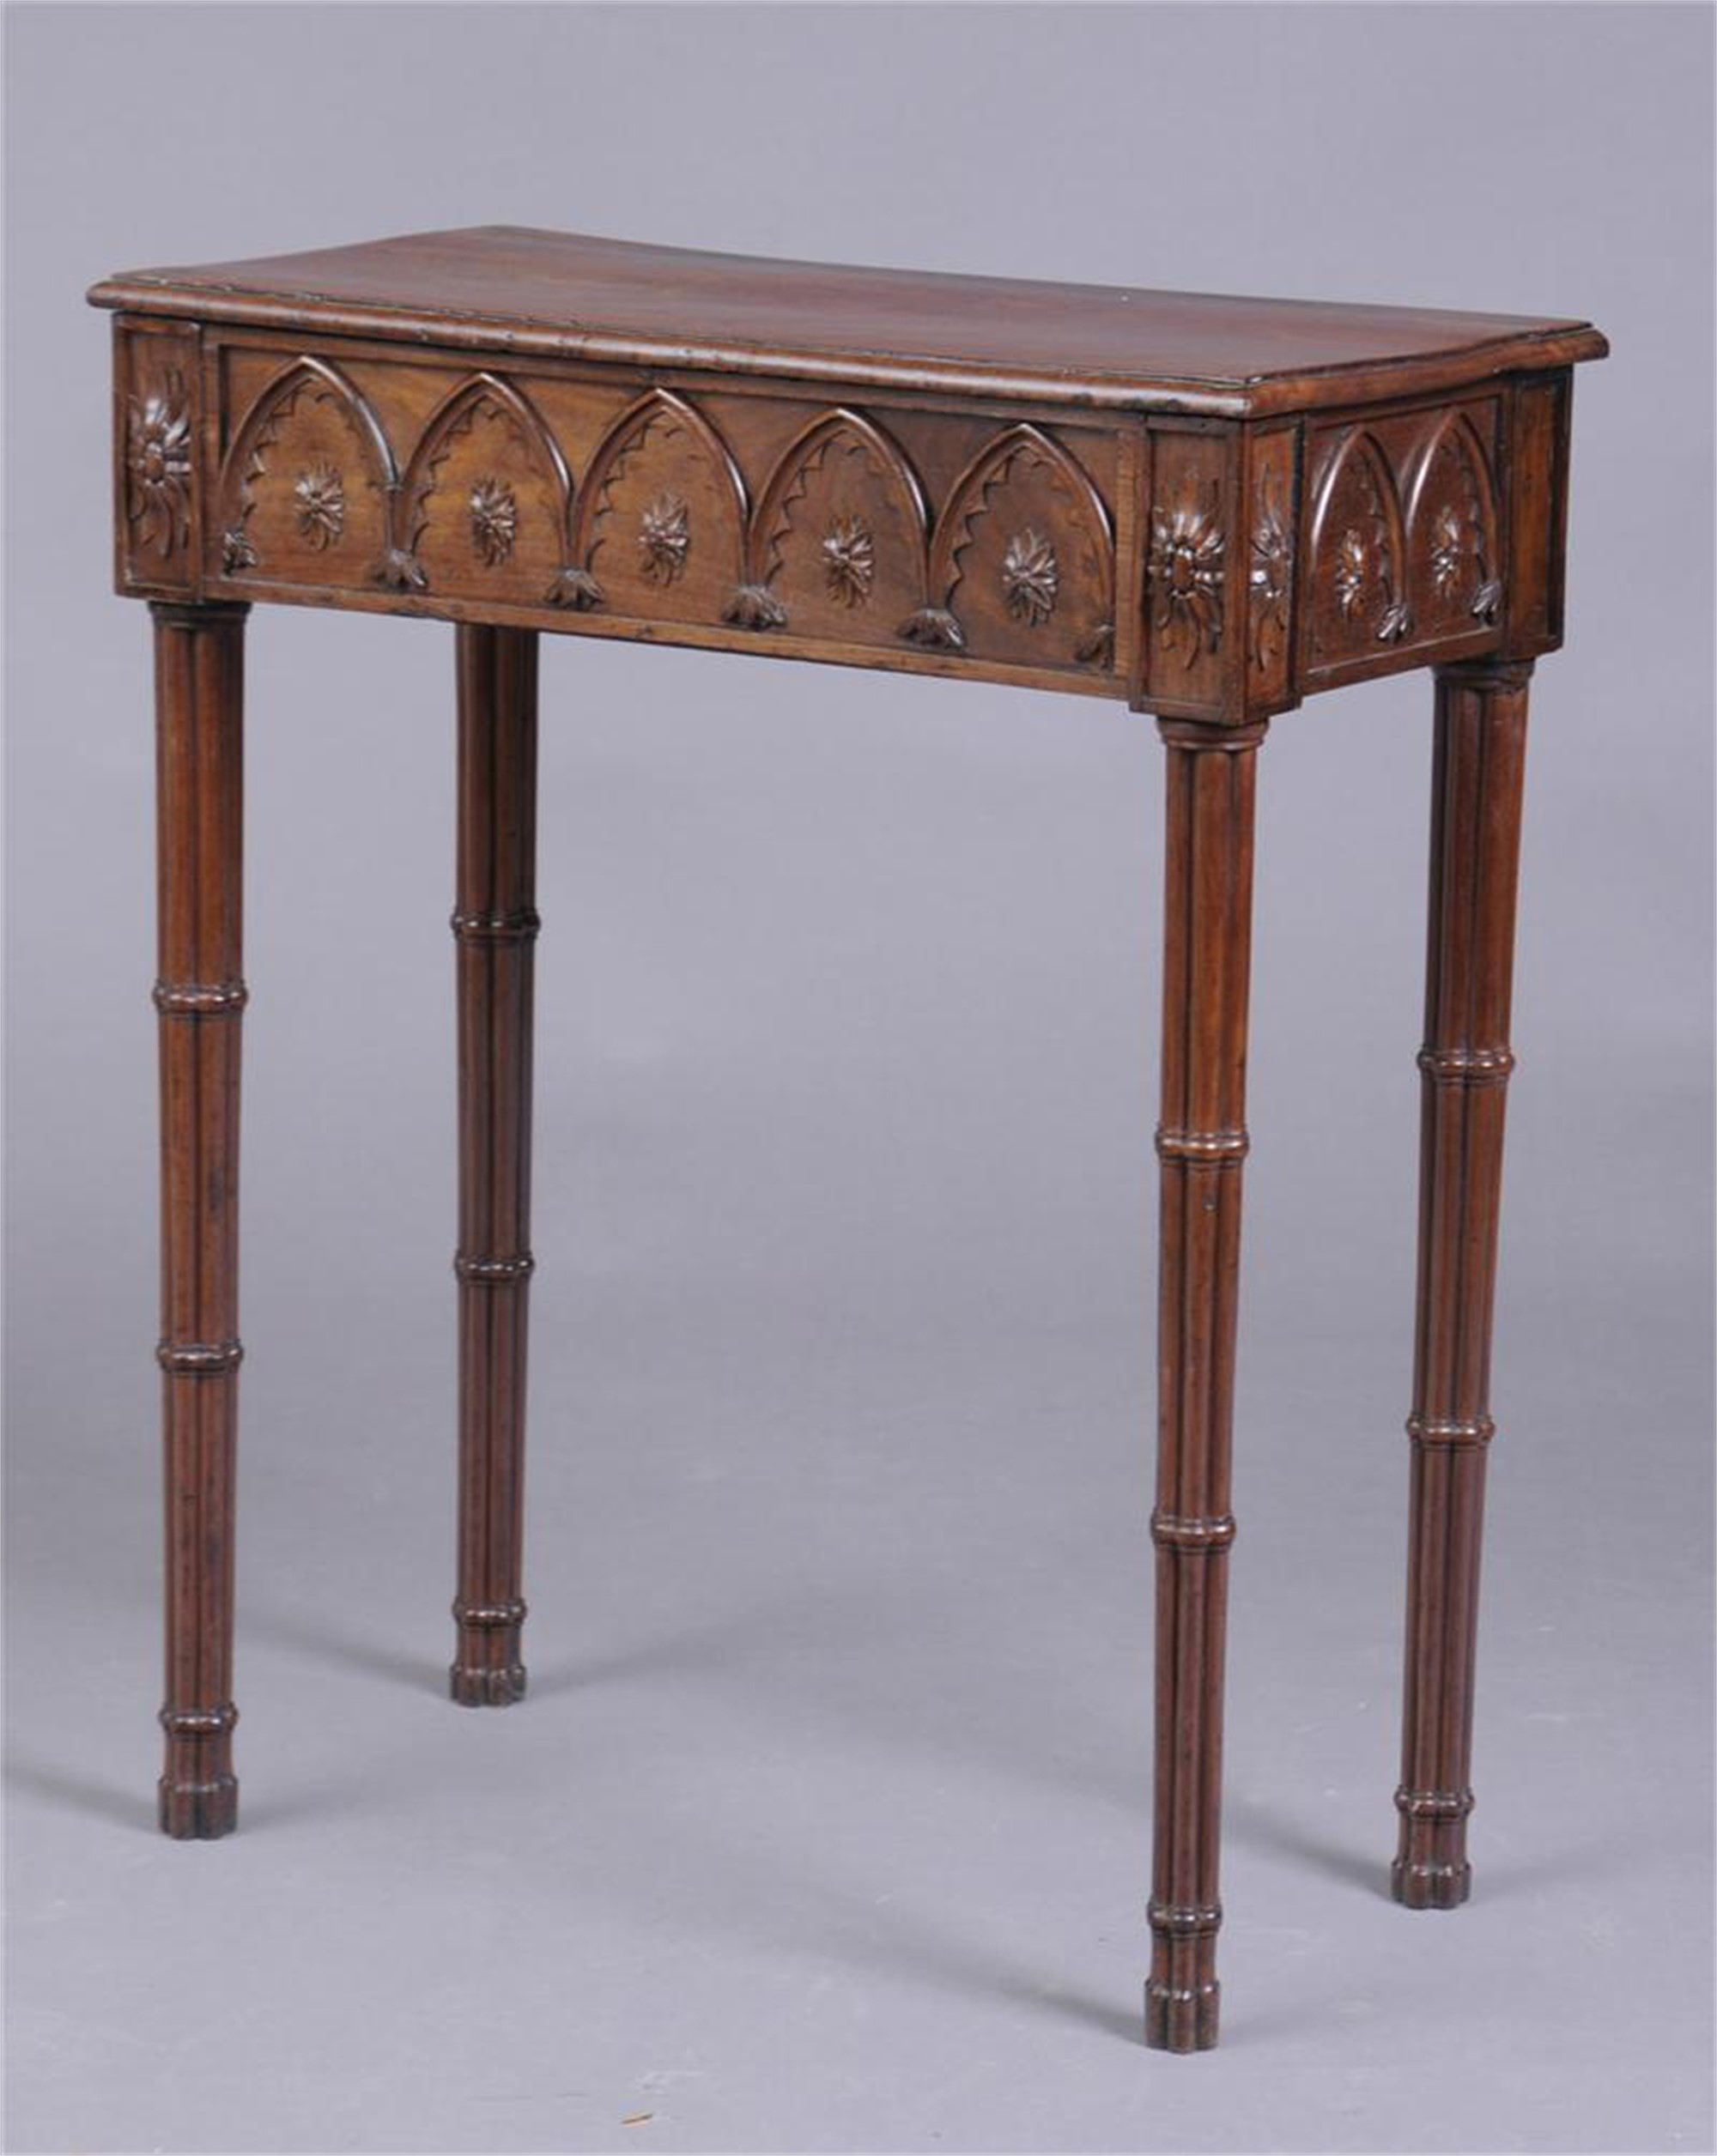 GEORGE III CARVED MAHOGANY PIER TABLE IN THE GOTHIC TASTE